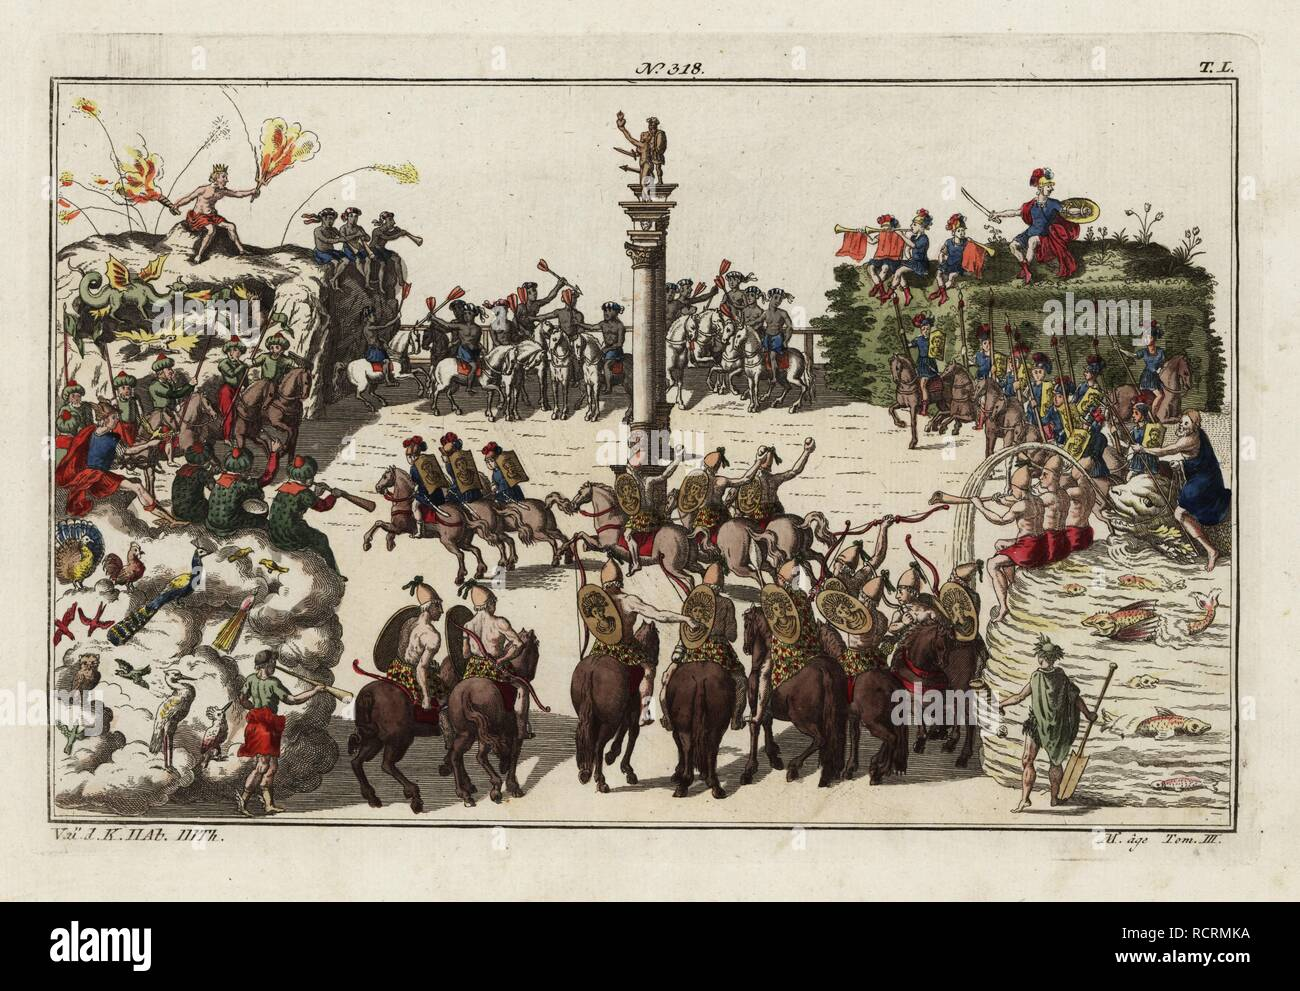 A carousel parade among teams of knights representing the four elements fire, wind, earth and water. Part of the celebration of the birth of Freiderich, Duke of Wurttemberg, 1616. Taken from Delineation und Abbildung aller furstlichen Anzug und Ritterspielen by Esaias von Hulsen, 1617. Handcoloured copperplate engraving from Robert von Spalart's Historical Picture of the Costumes of the Principal People of Antiquity and of the Middle Ages, Chez Collignon, Metz, 1810. - Stock Image